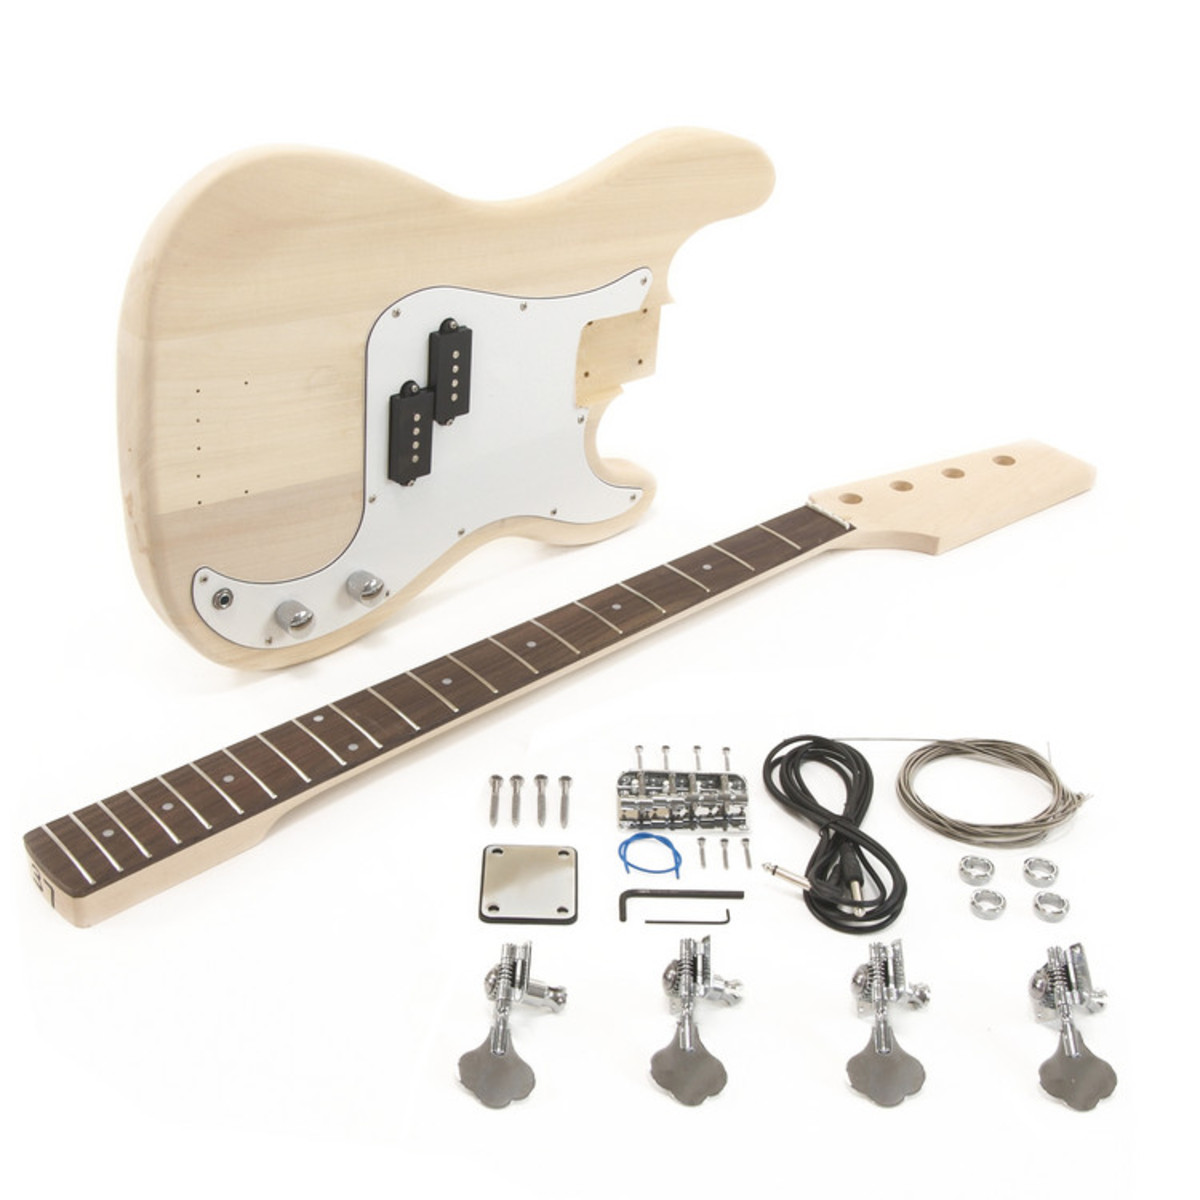 LA Electric Bass Guitar DIY Kit